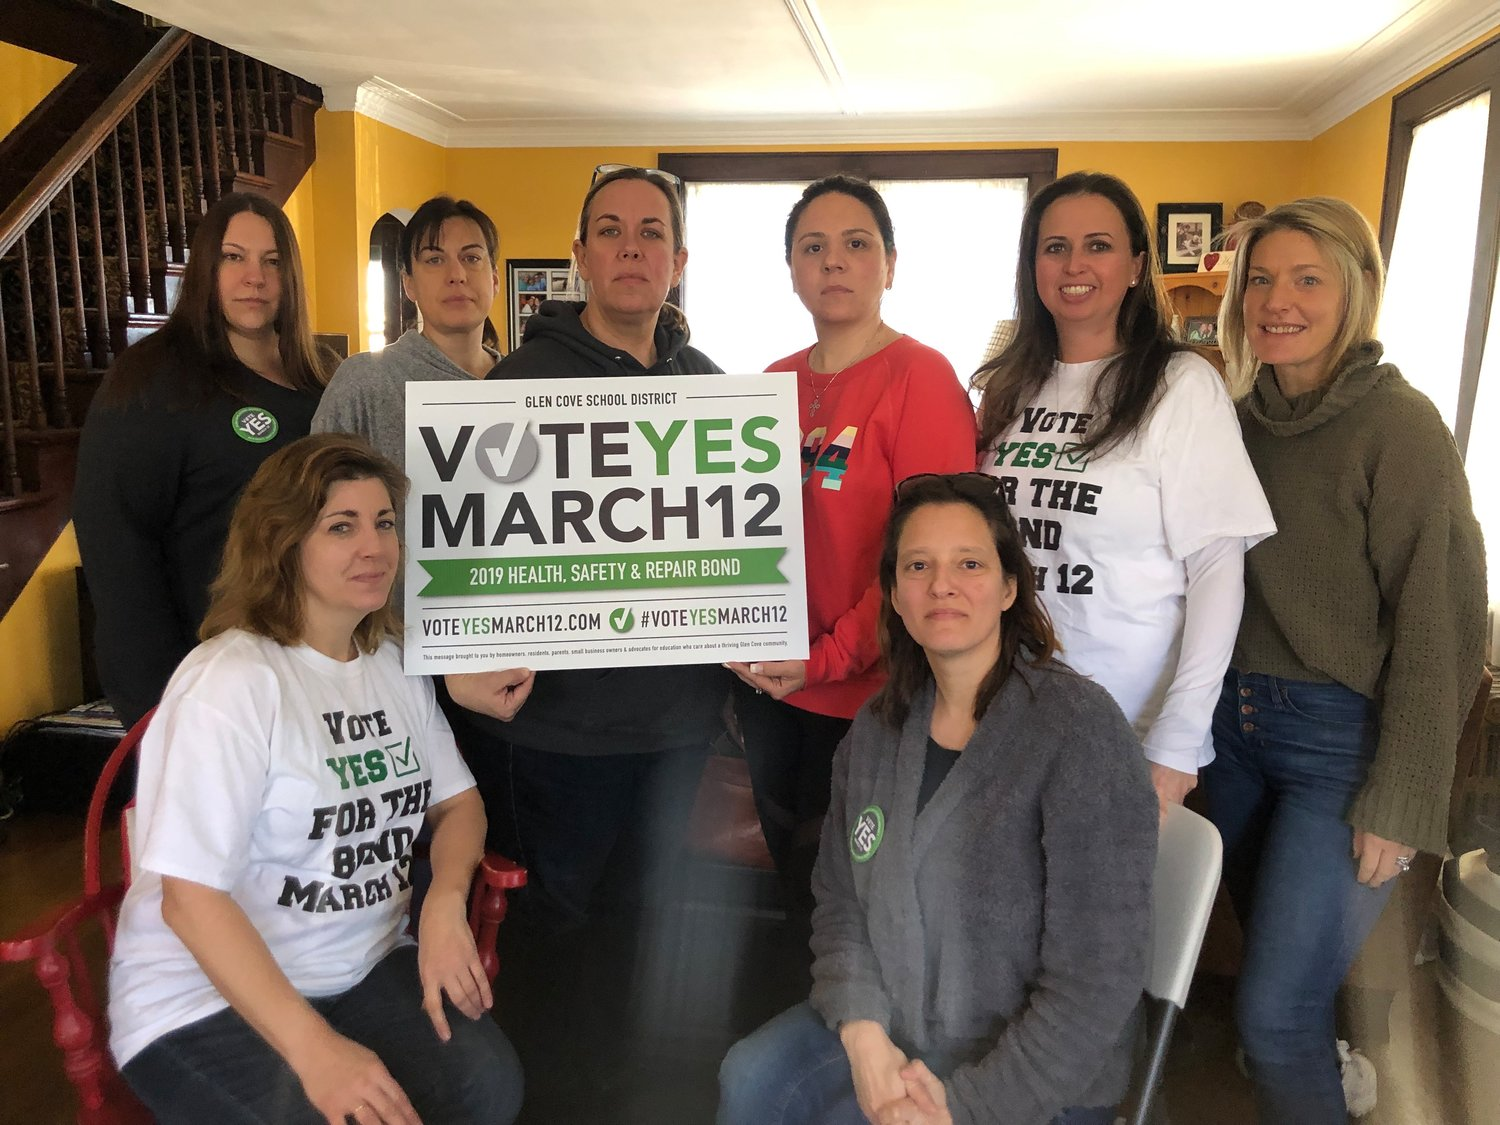 Vote Yes March 12 are urging voters to approve the $84.6 million bond to renovate and improve all six Glen Cove schools.